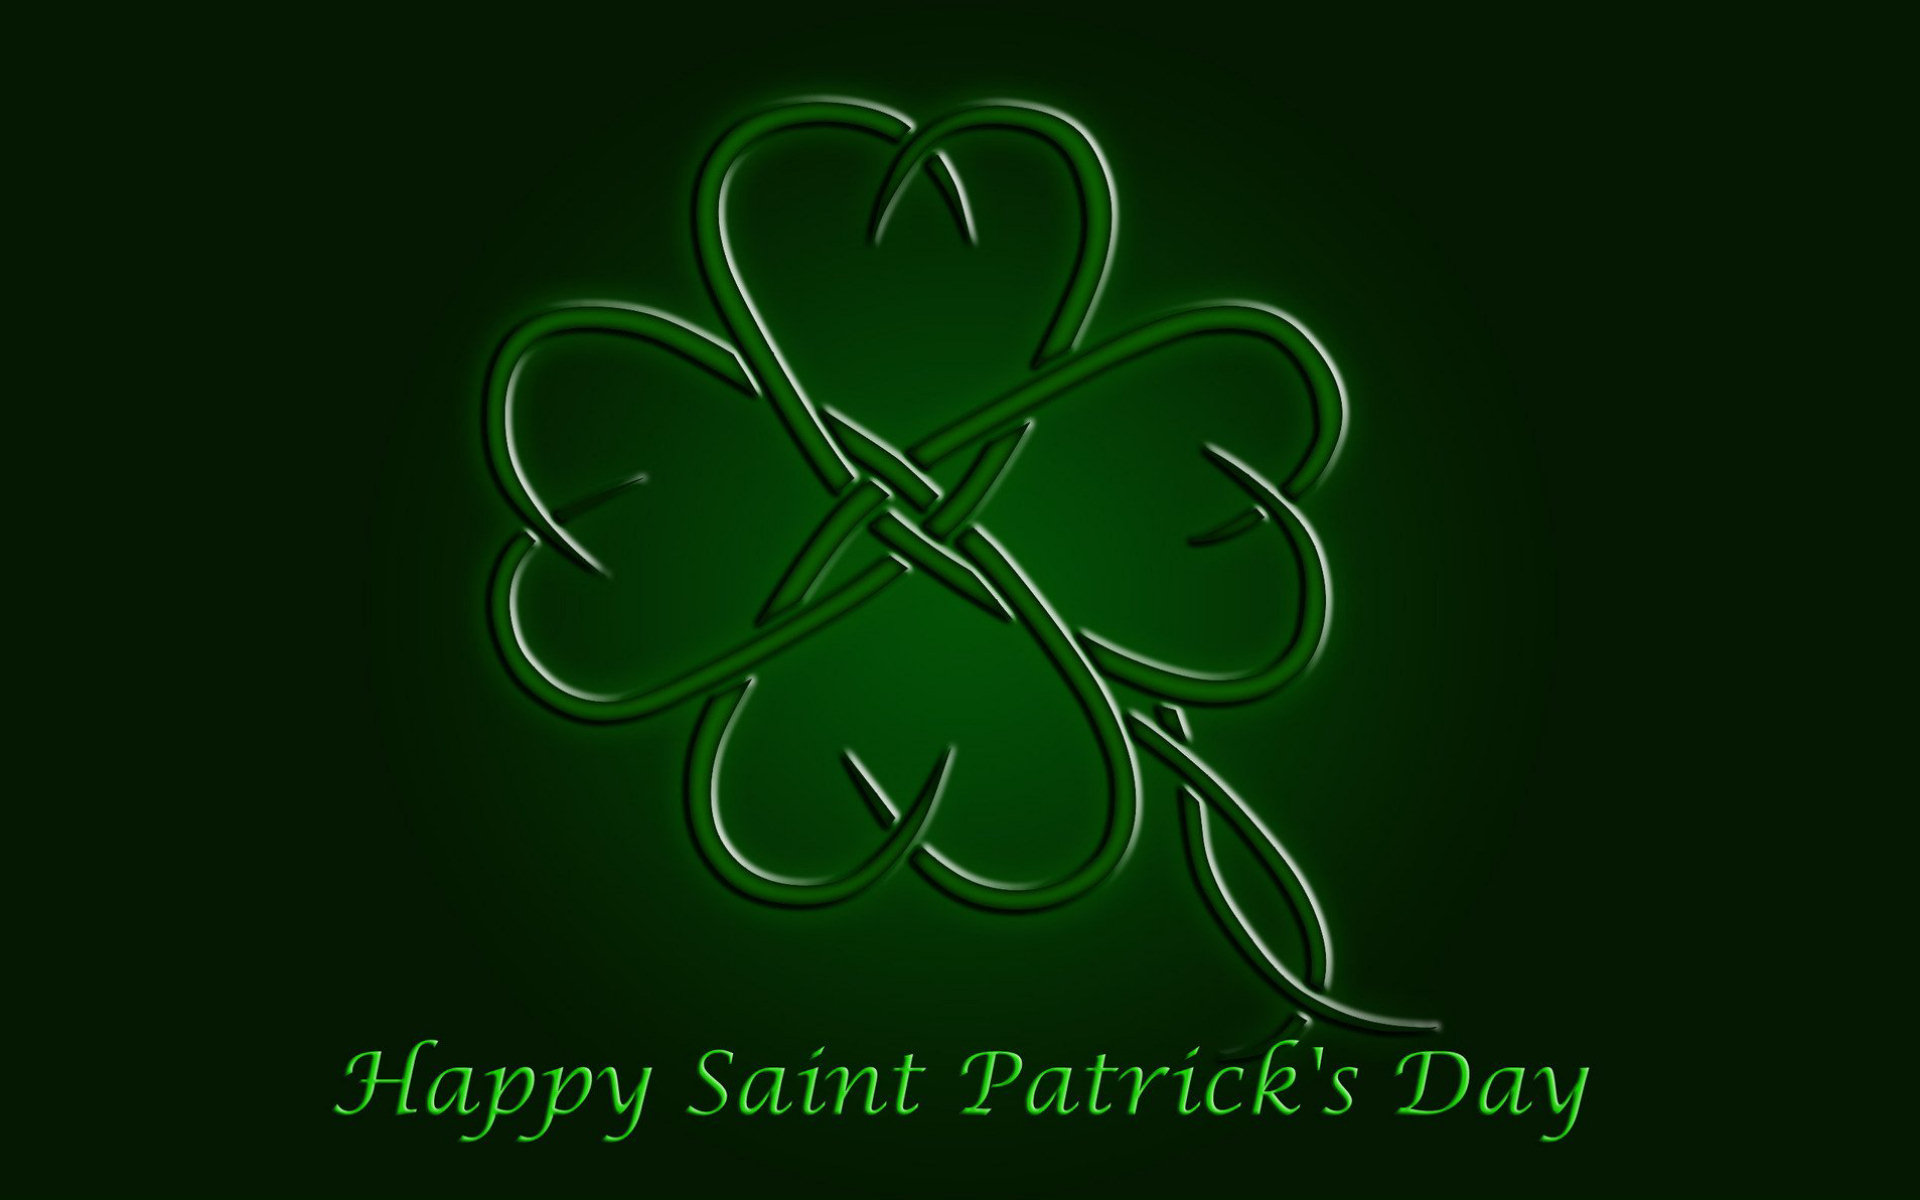 St Patricks Day Computer Wallpapers Desktop Backgrounds 1920x1200 1920x1200